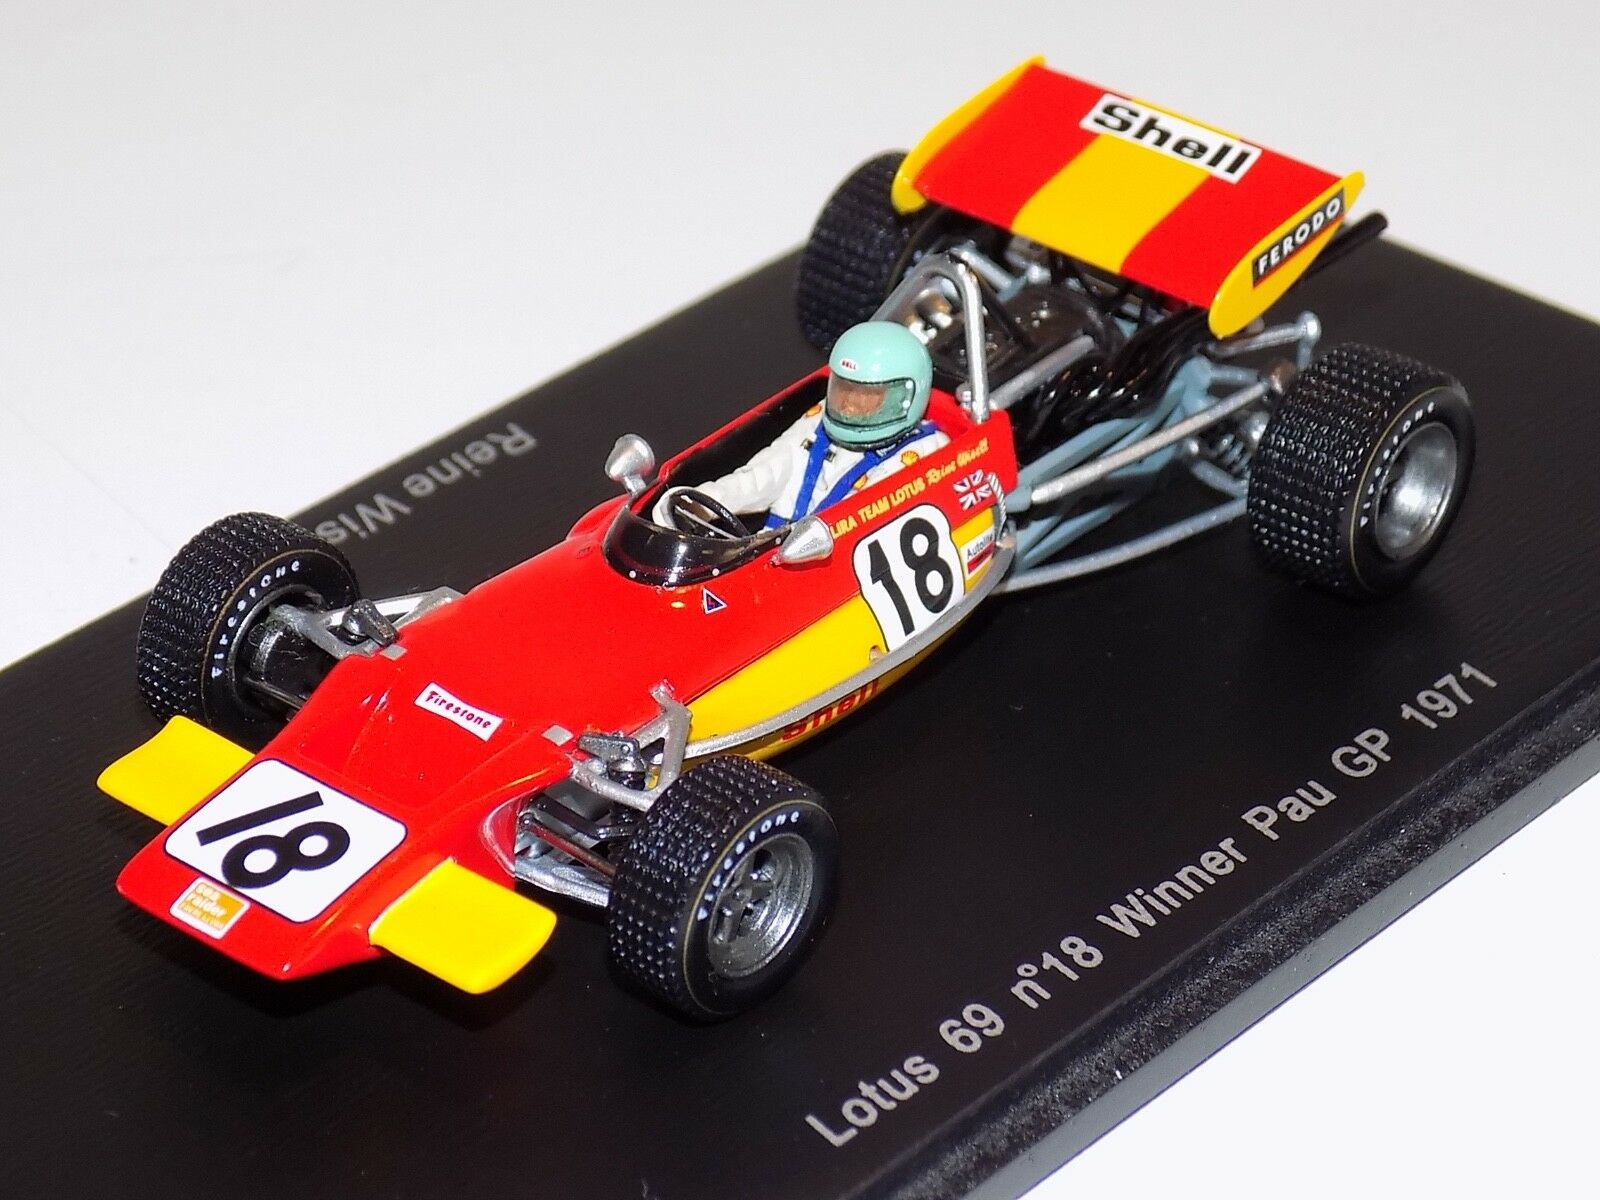 1 43 Spark Lotus 69 F2 car Winner of Pau GP 1971 Reine Wisell S2147